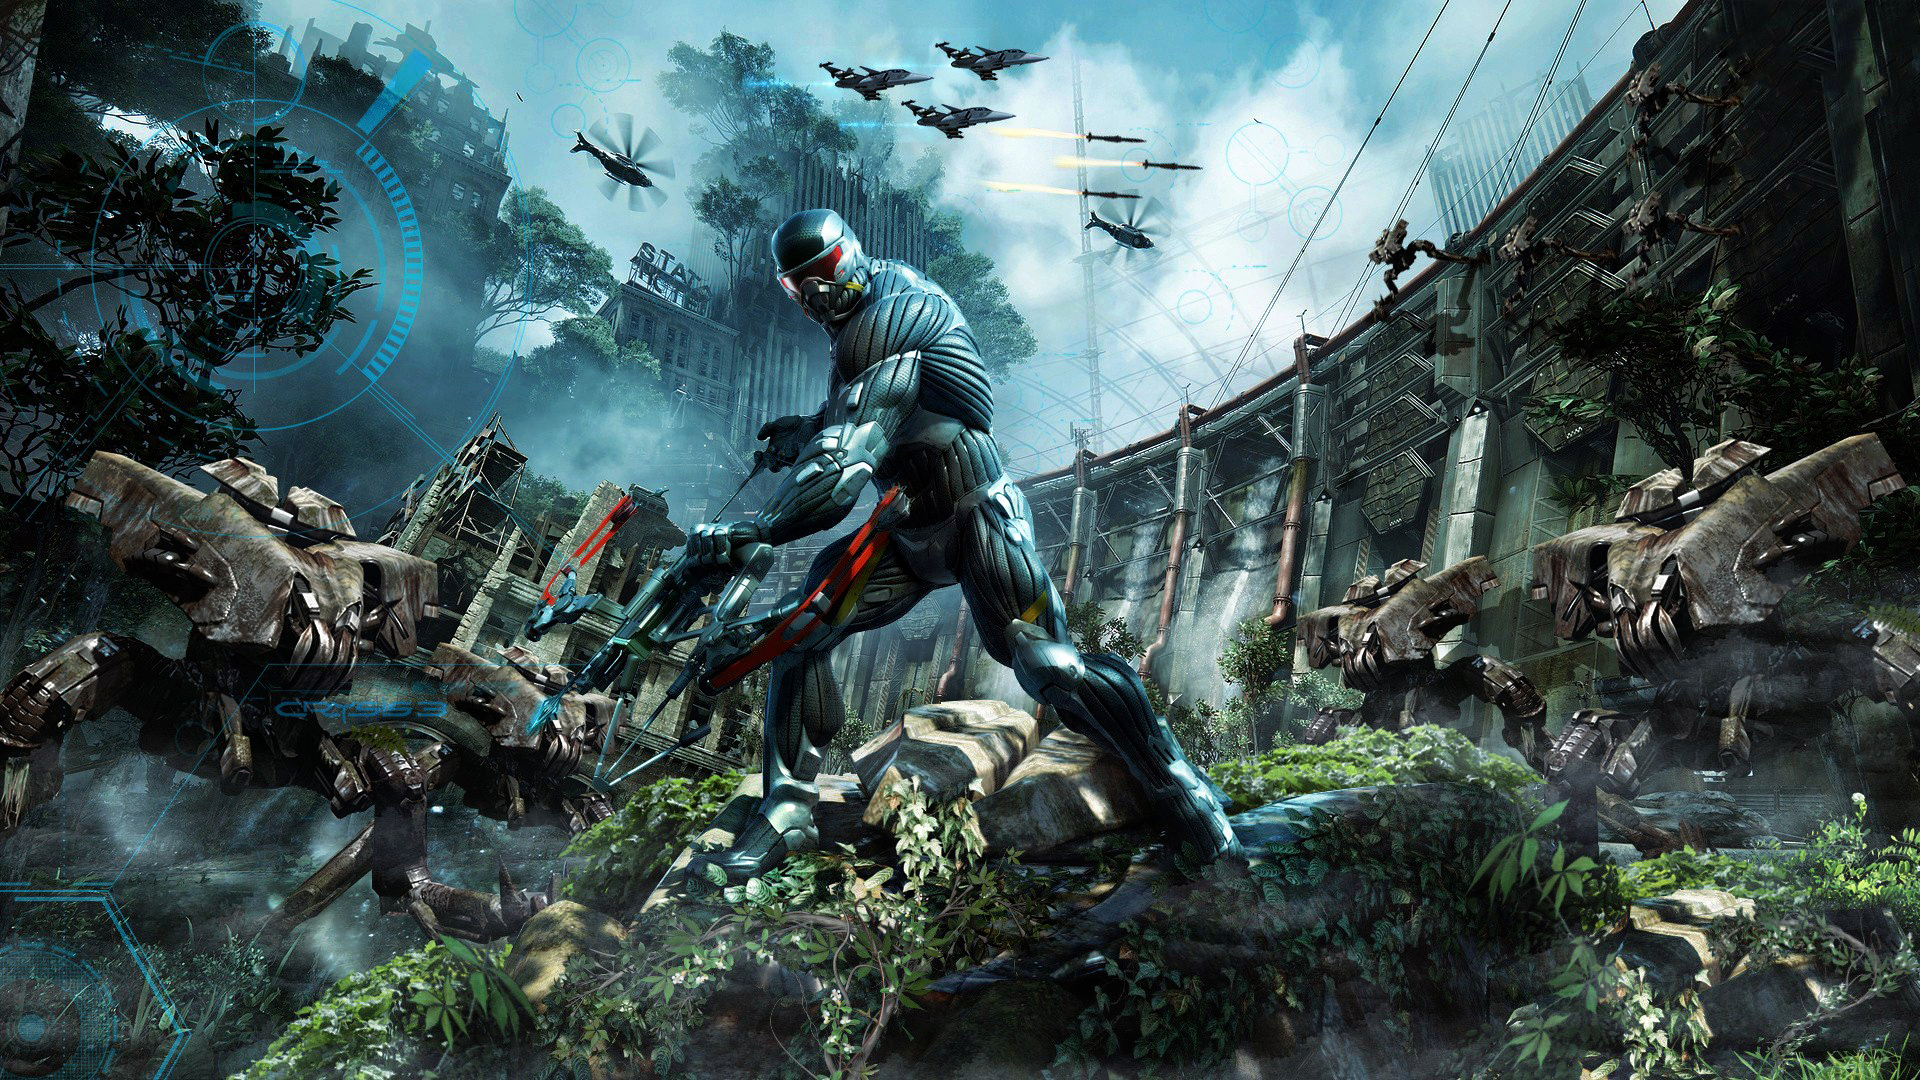 Homepage Games Video Game Crysis wallpaper 1920x1080 1 1920x1080